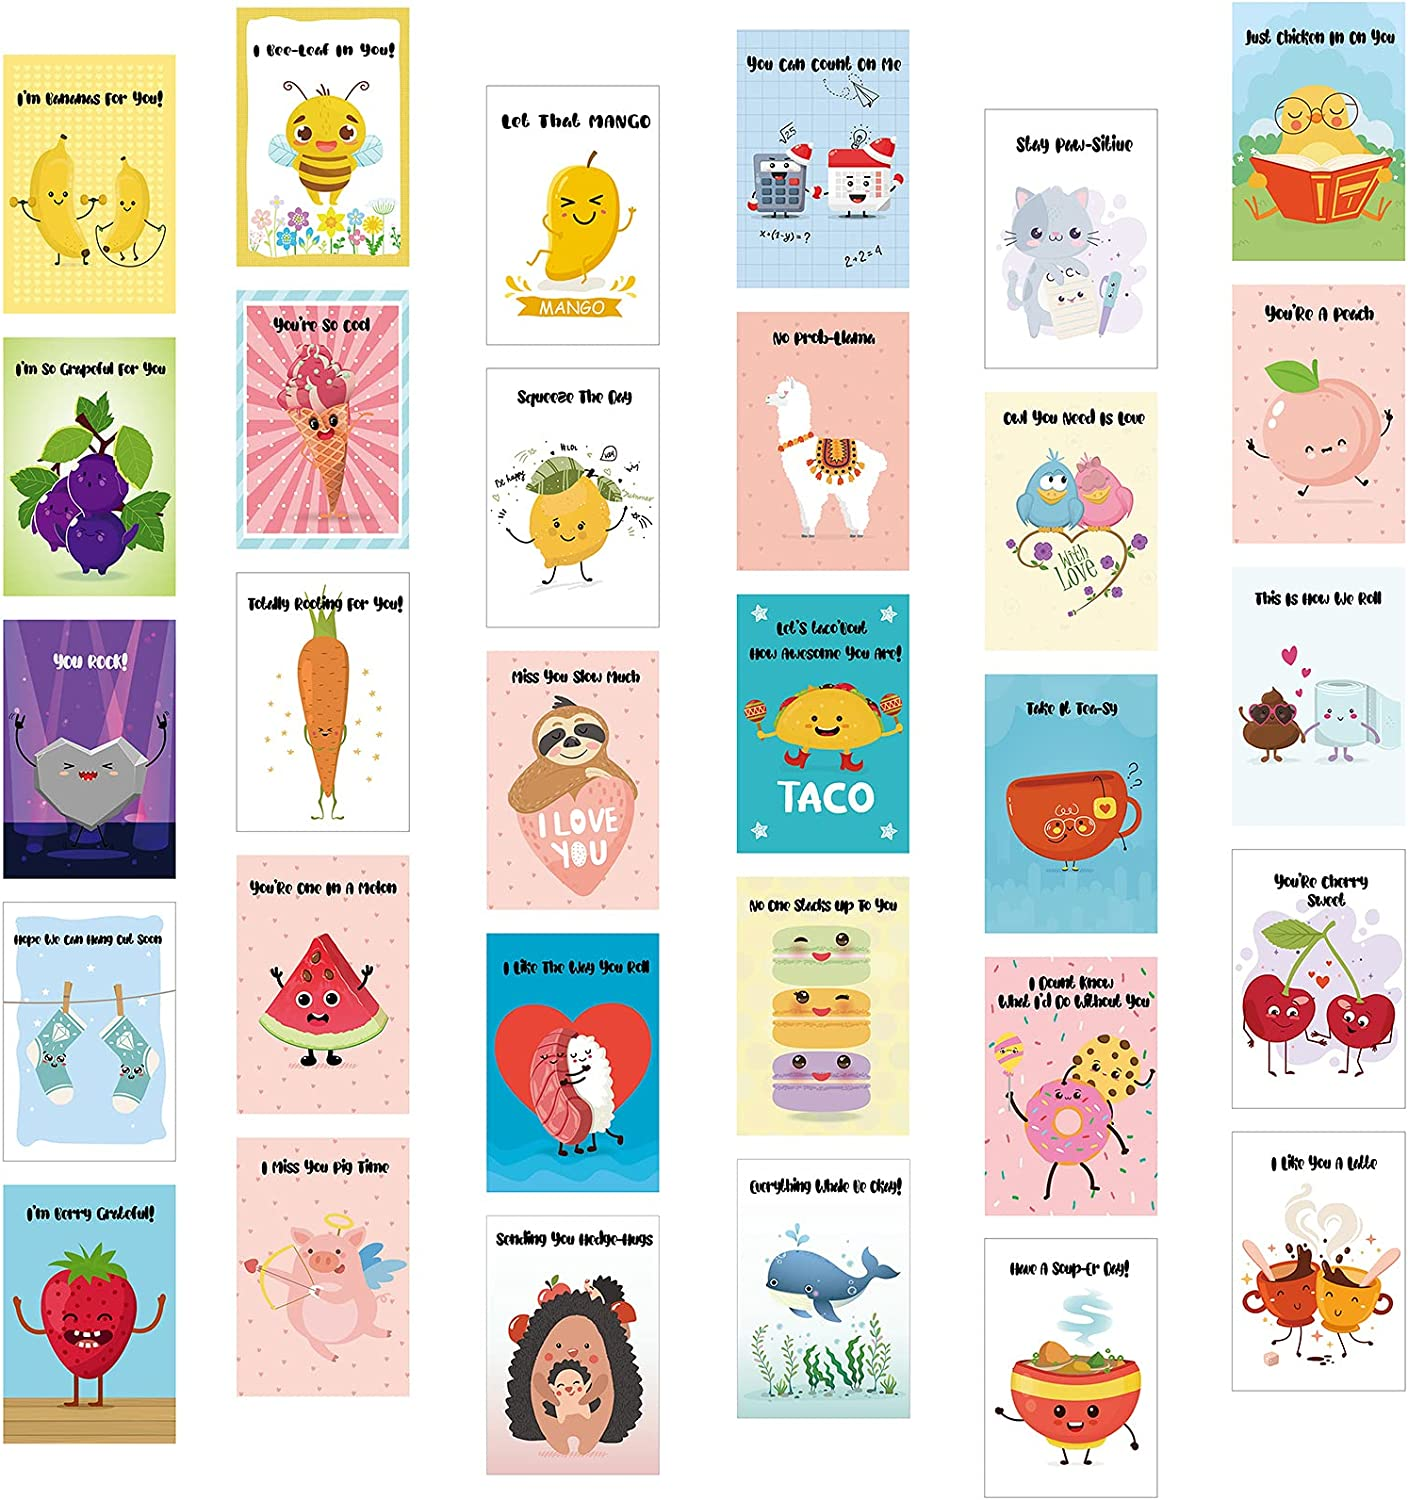 30 Pieces Funny Pun Cards with 30 Pieces Envelopes Set Funny Puns Hilarious Cards Animals and Food Cartoon Greeting Cards Punny Puns Note Cards for Friends, Birthday, Holiday Present